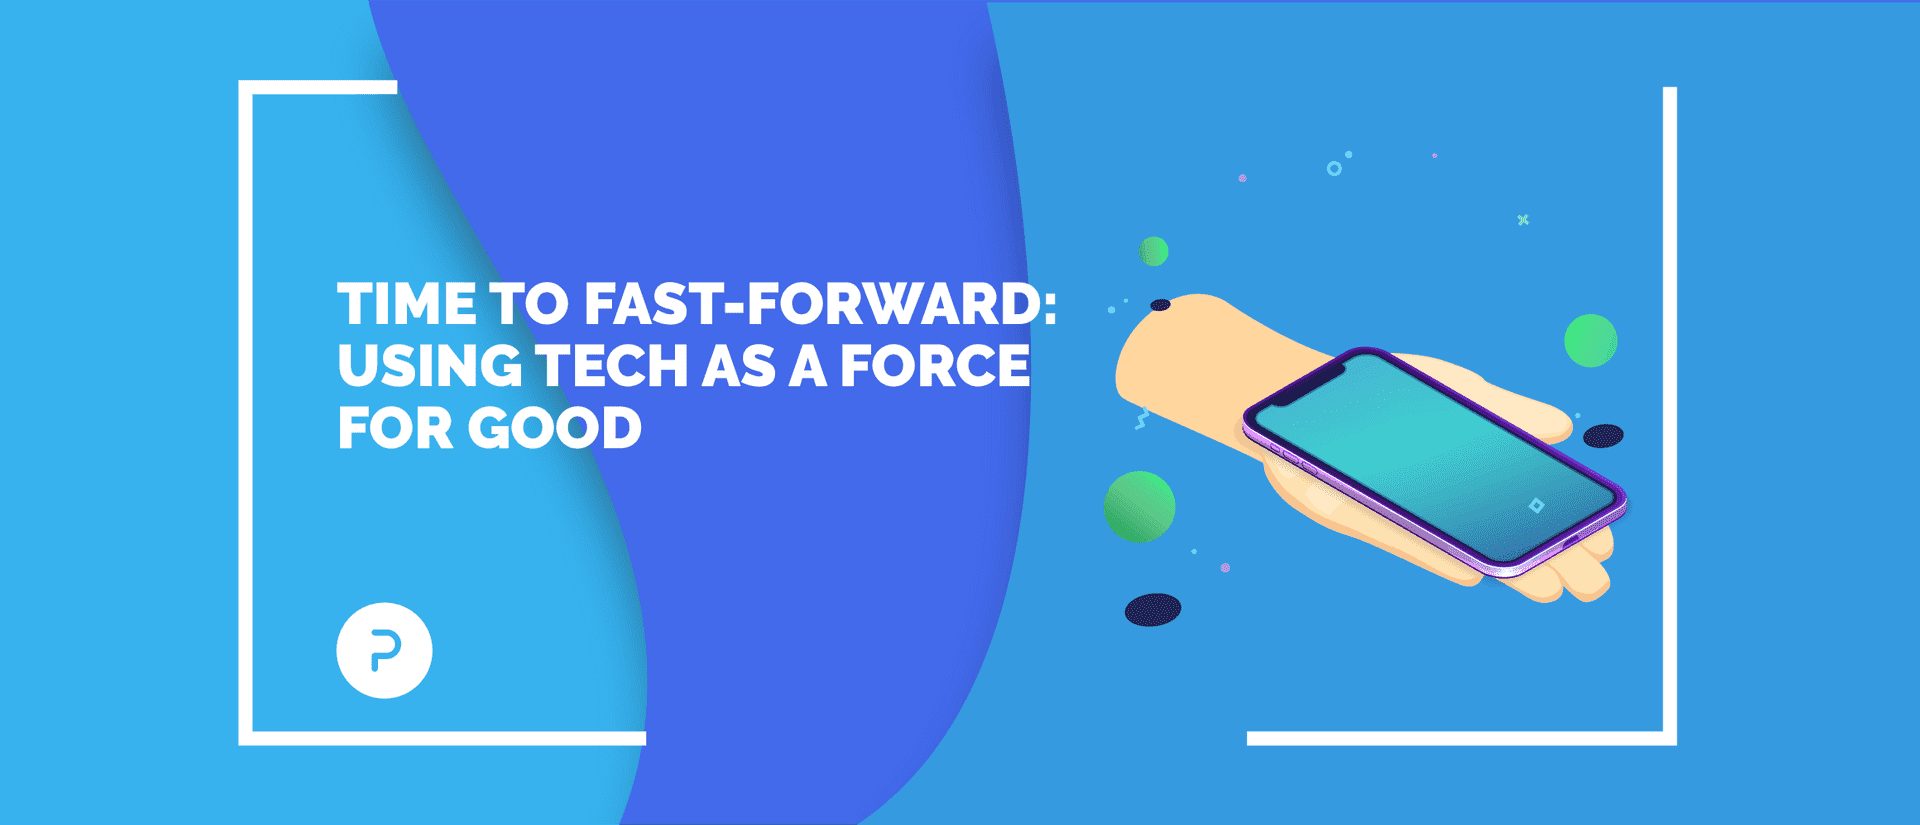 Time to Fast-forward: Using Tech as a Force for Good